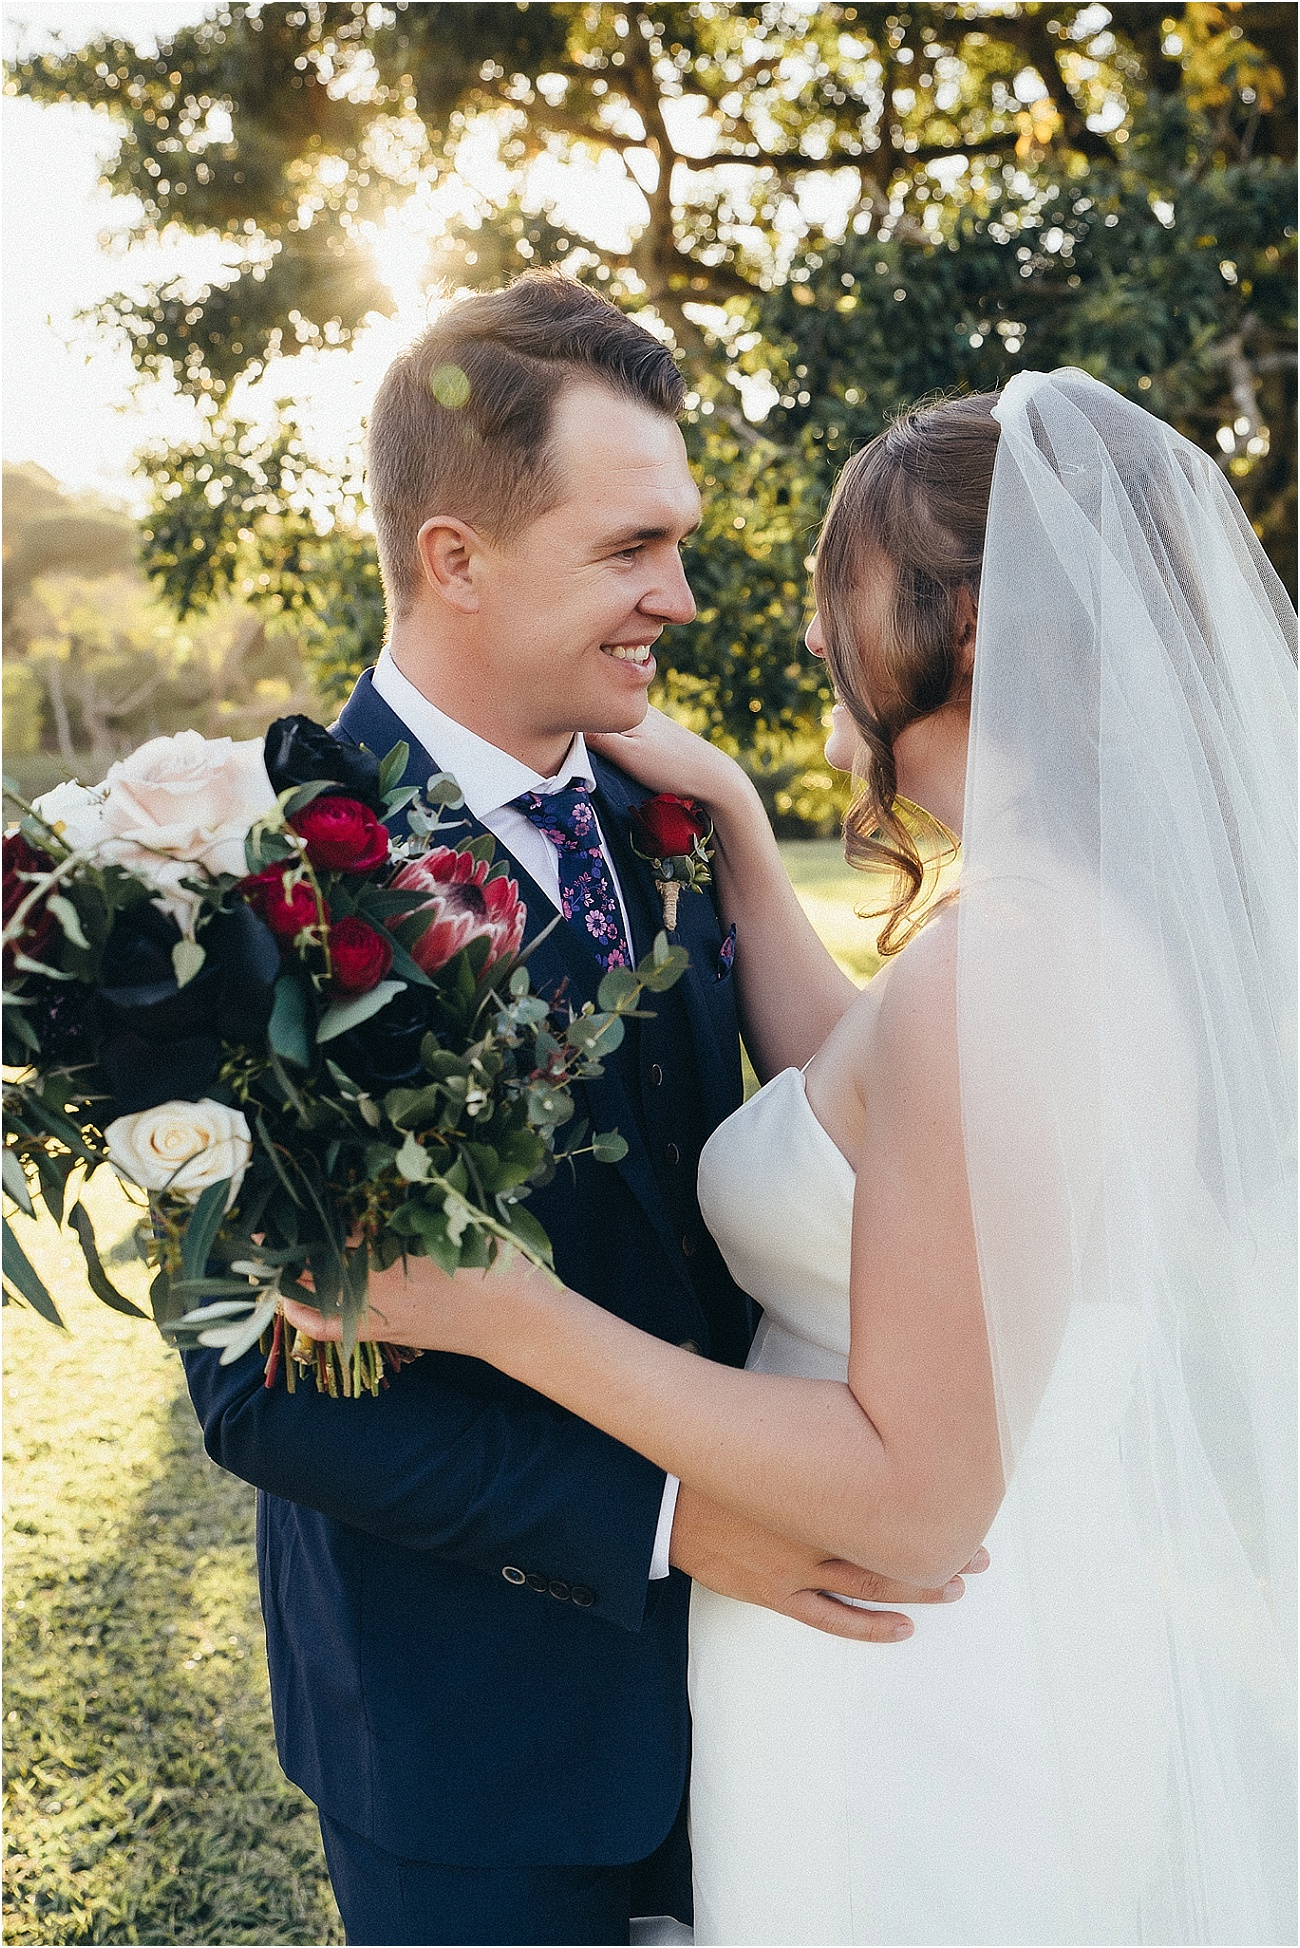 Spicers Tamarind retreat weddings